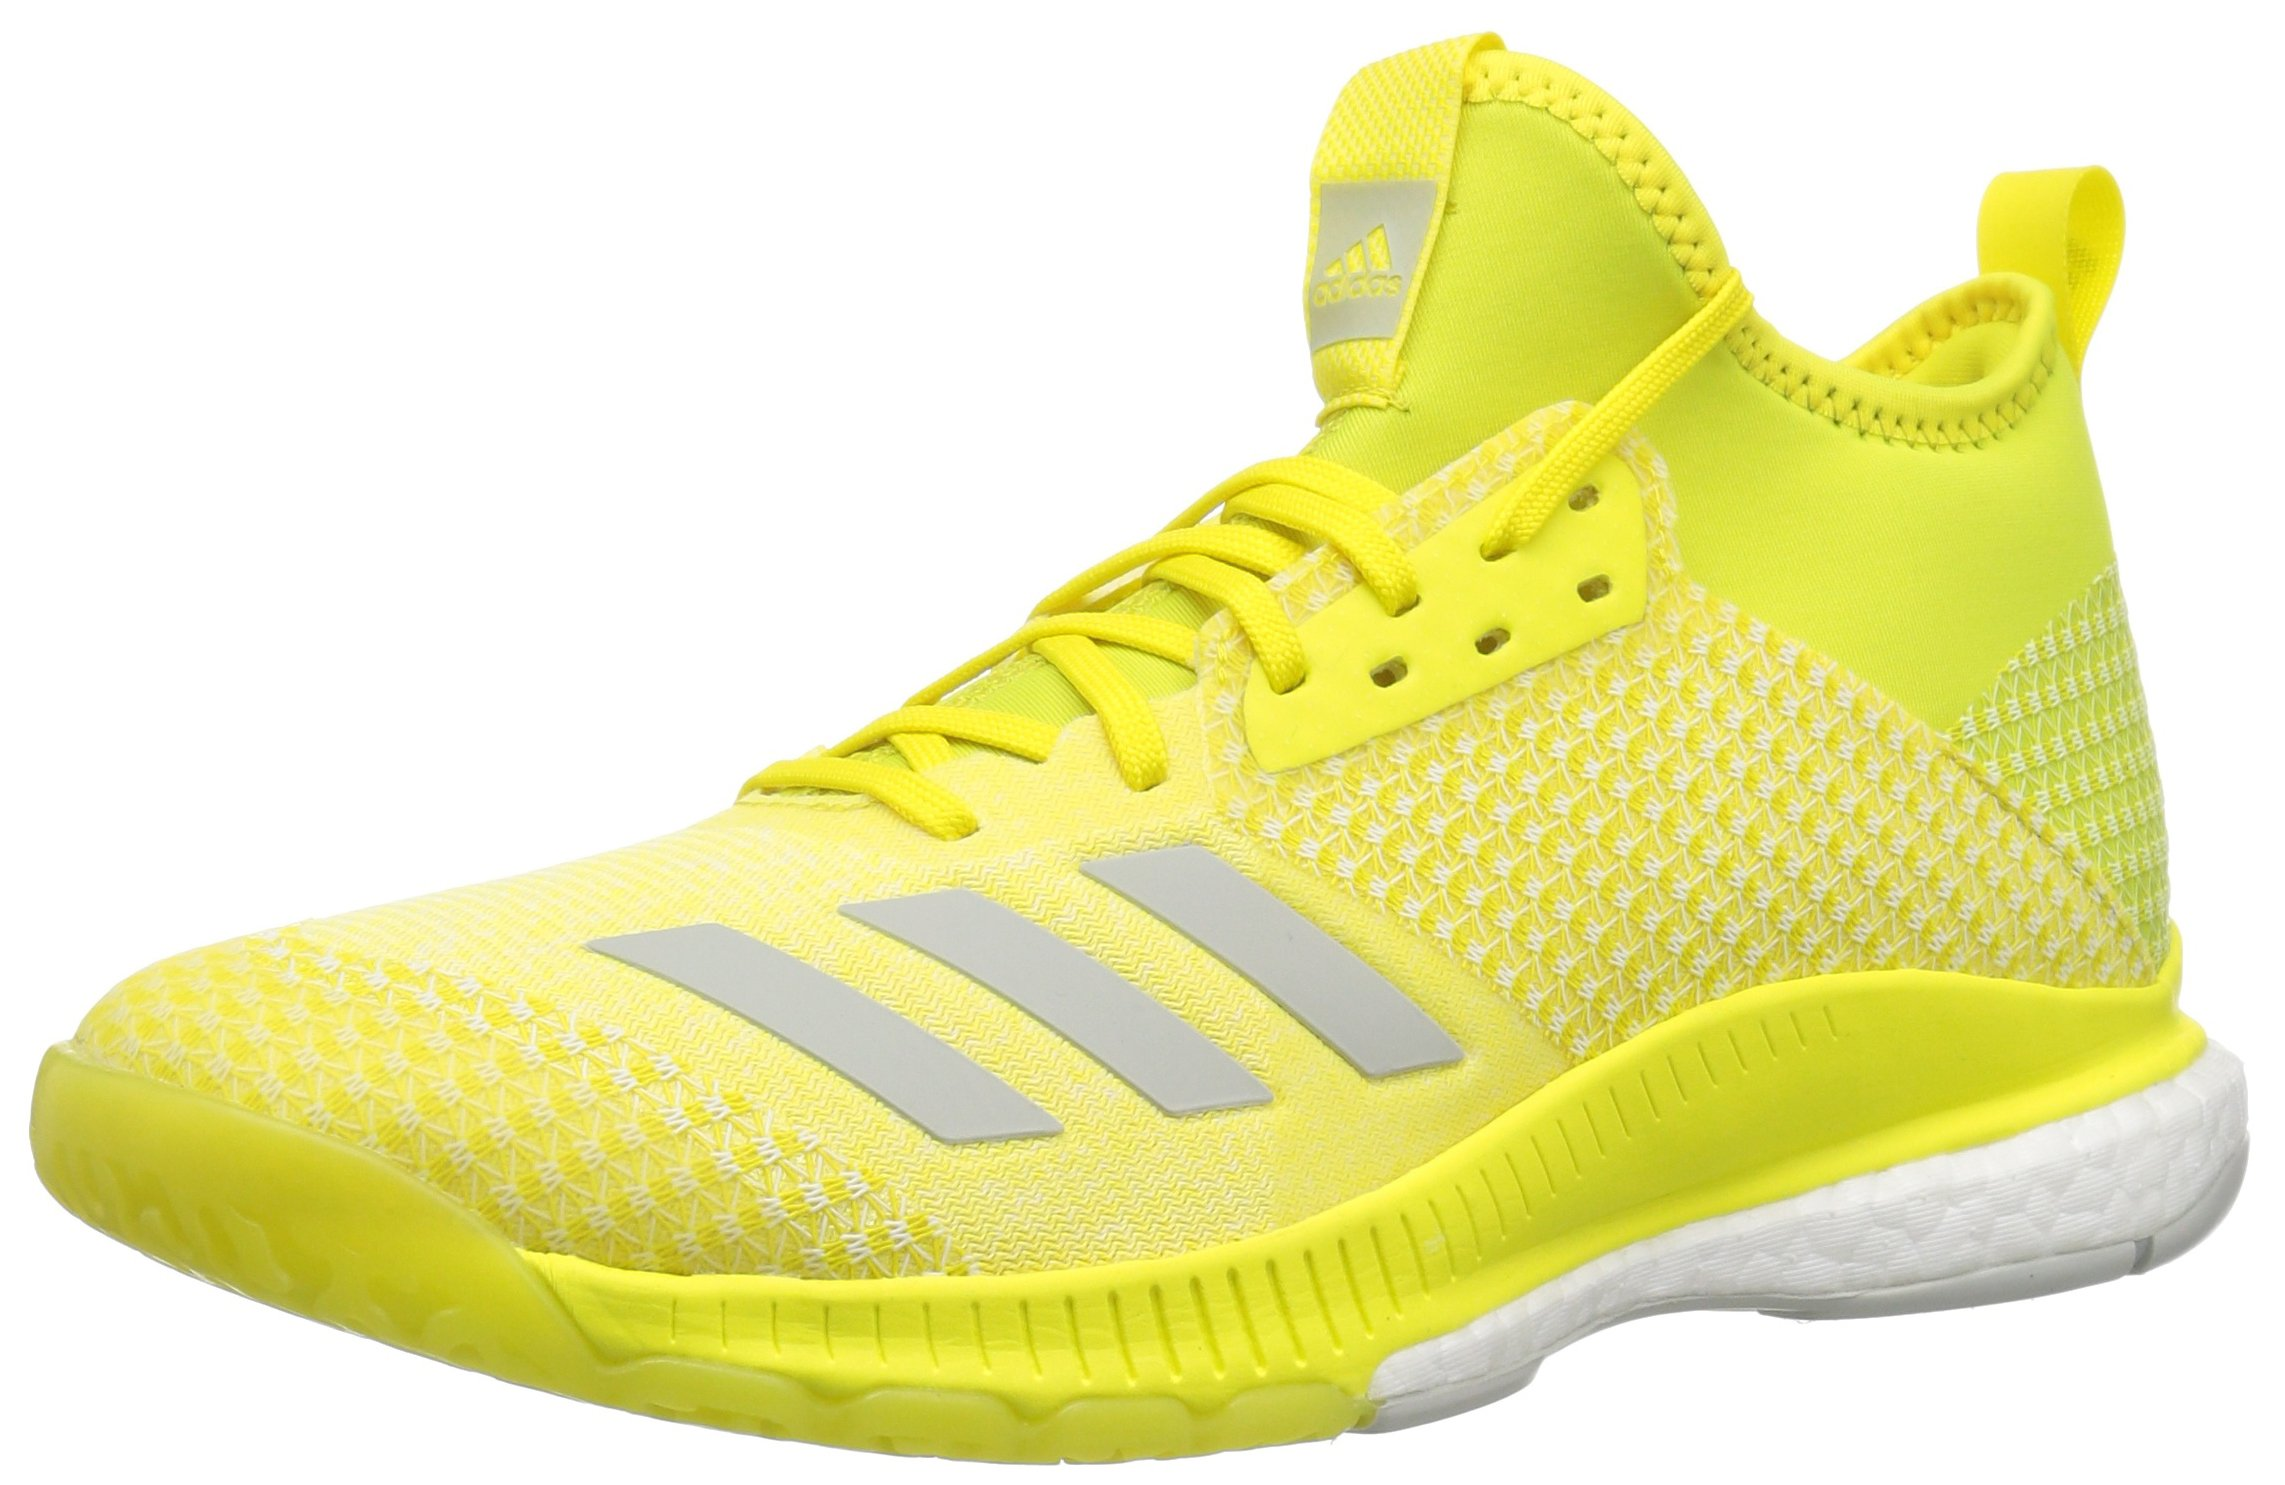 adidas Women's Crazyflight X 2 Mid Volleyball Shoe, Shock Yellow/ash  Silver/White, 5.5 M US